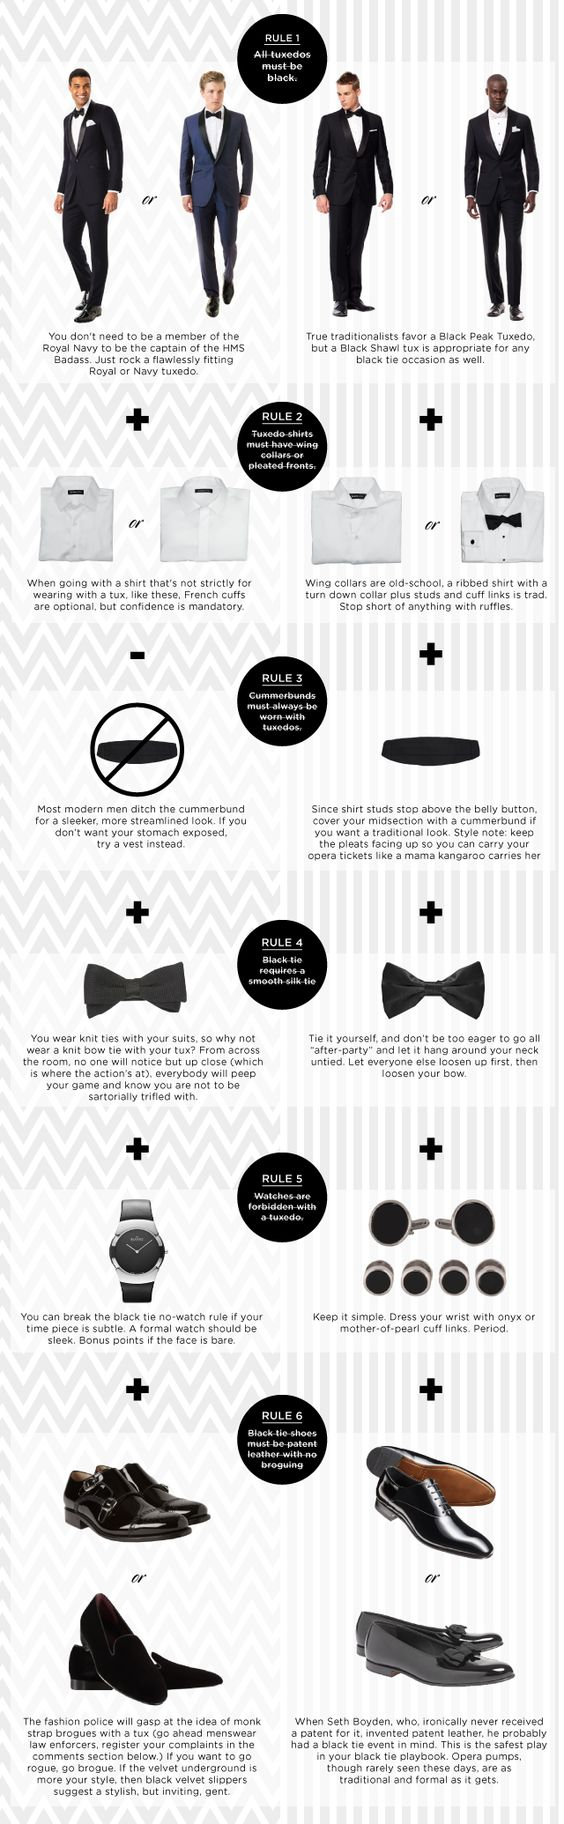 A guide to breaking all the black tie rules, in style. #zobelloman #menswear #mensfashion